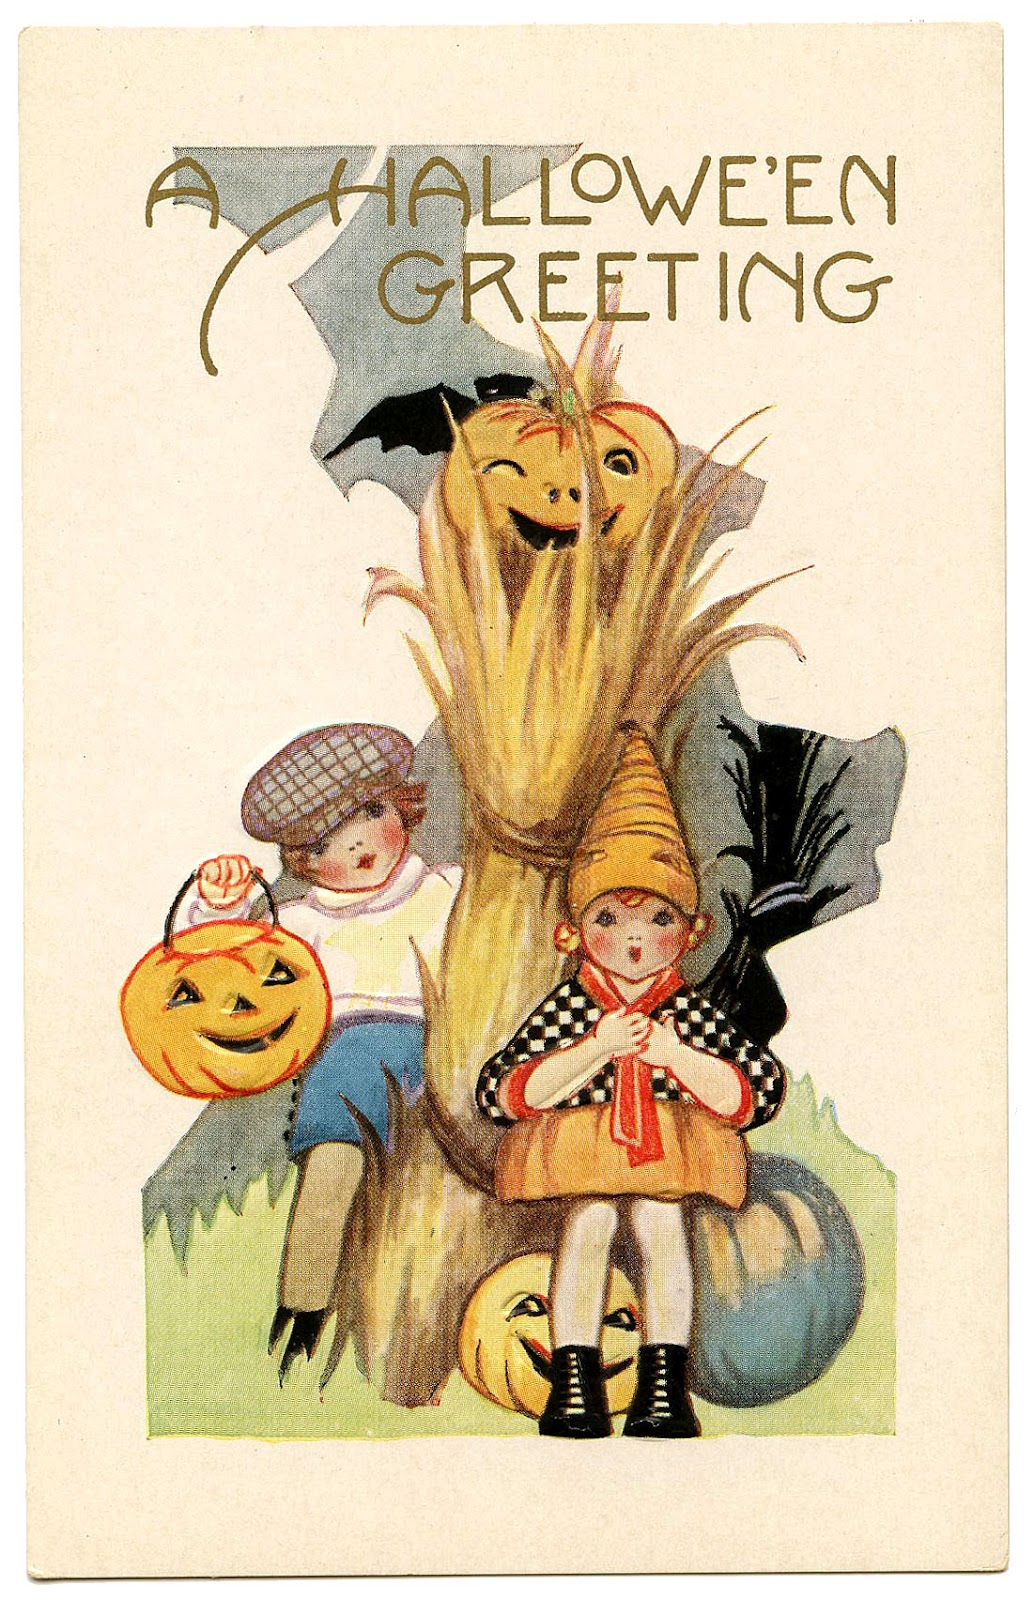 Vintage Halloween Graphic - Cute Kids with Pumpkins - The ...